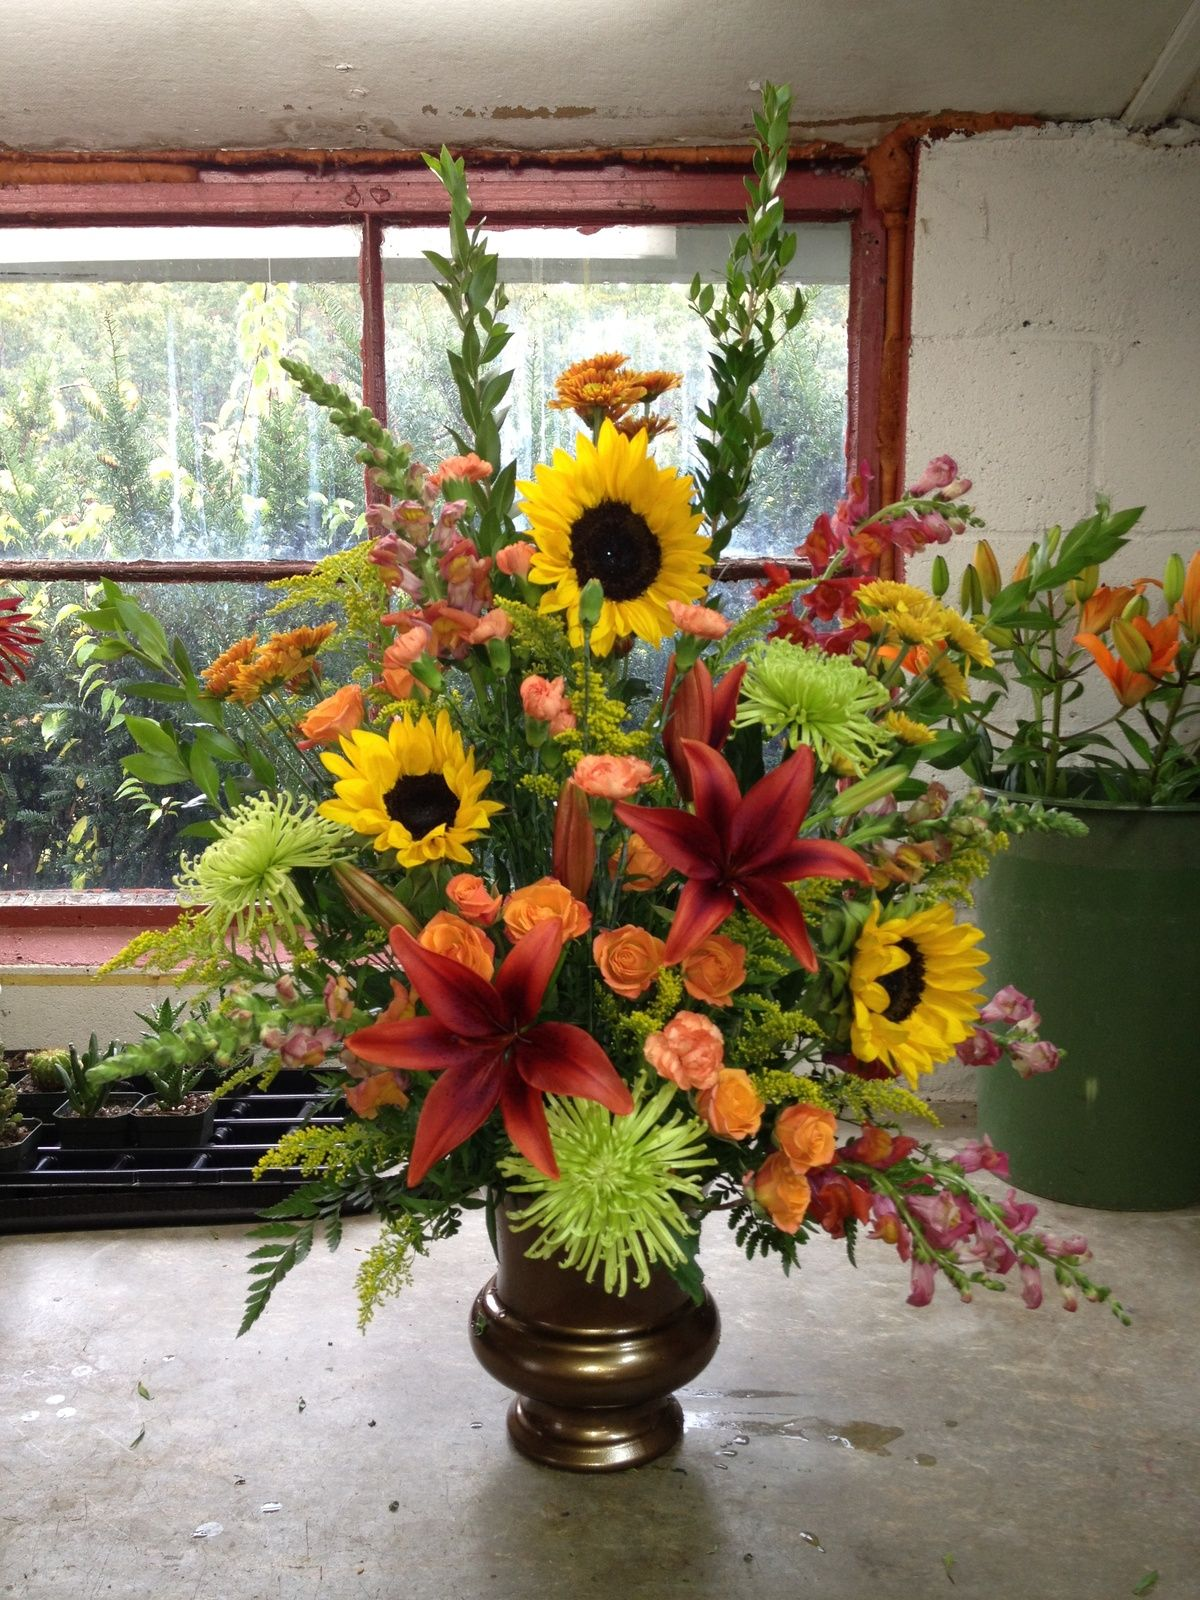 A Beautiful Funeral Arrangement Using Lilies And Sunflowers